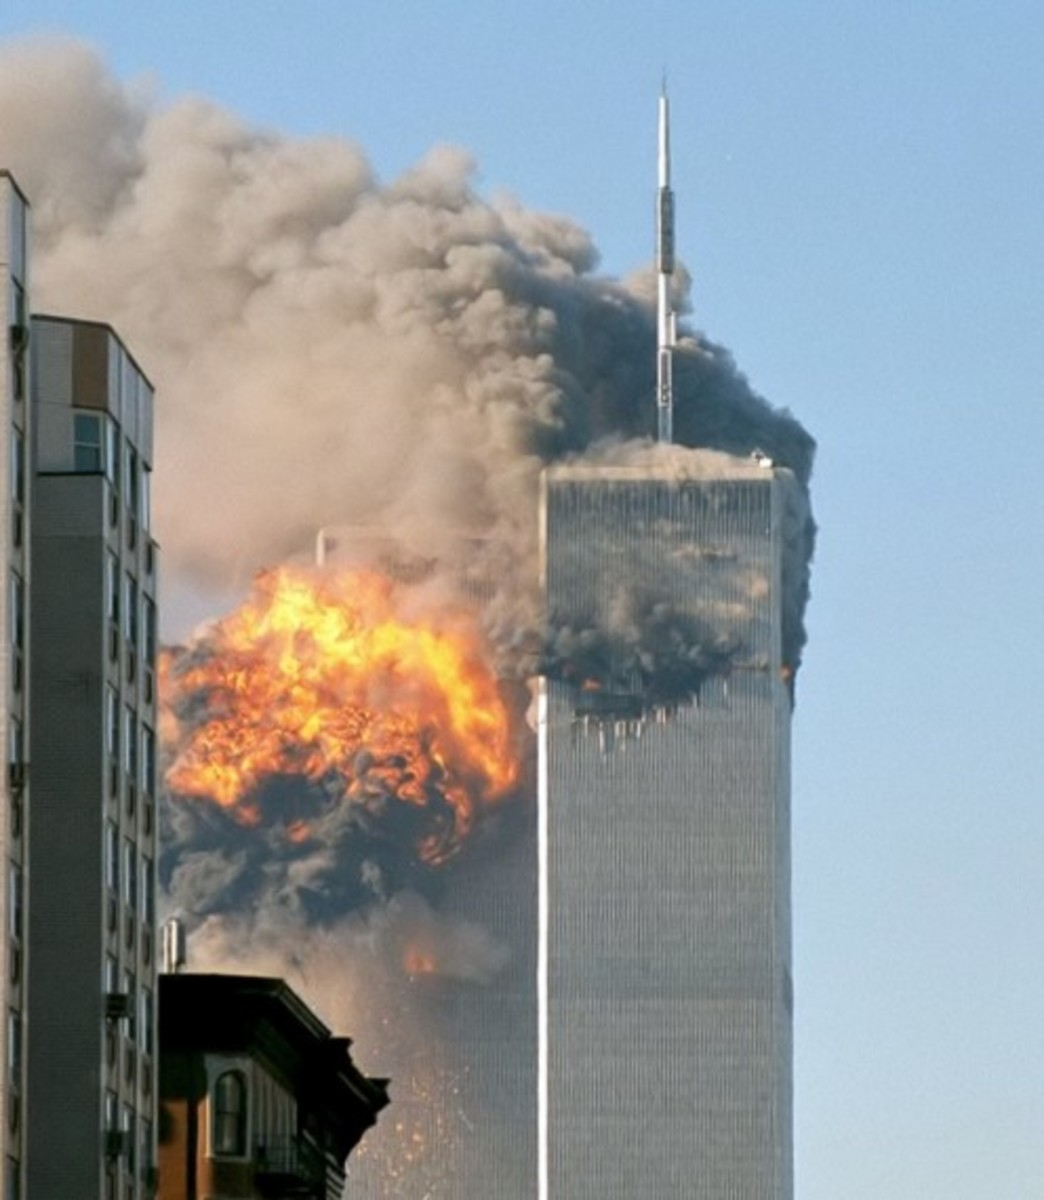 The northeast face of Two World Trade Center (south tower) after being struck by plane in the south face.